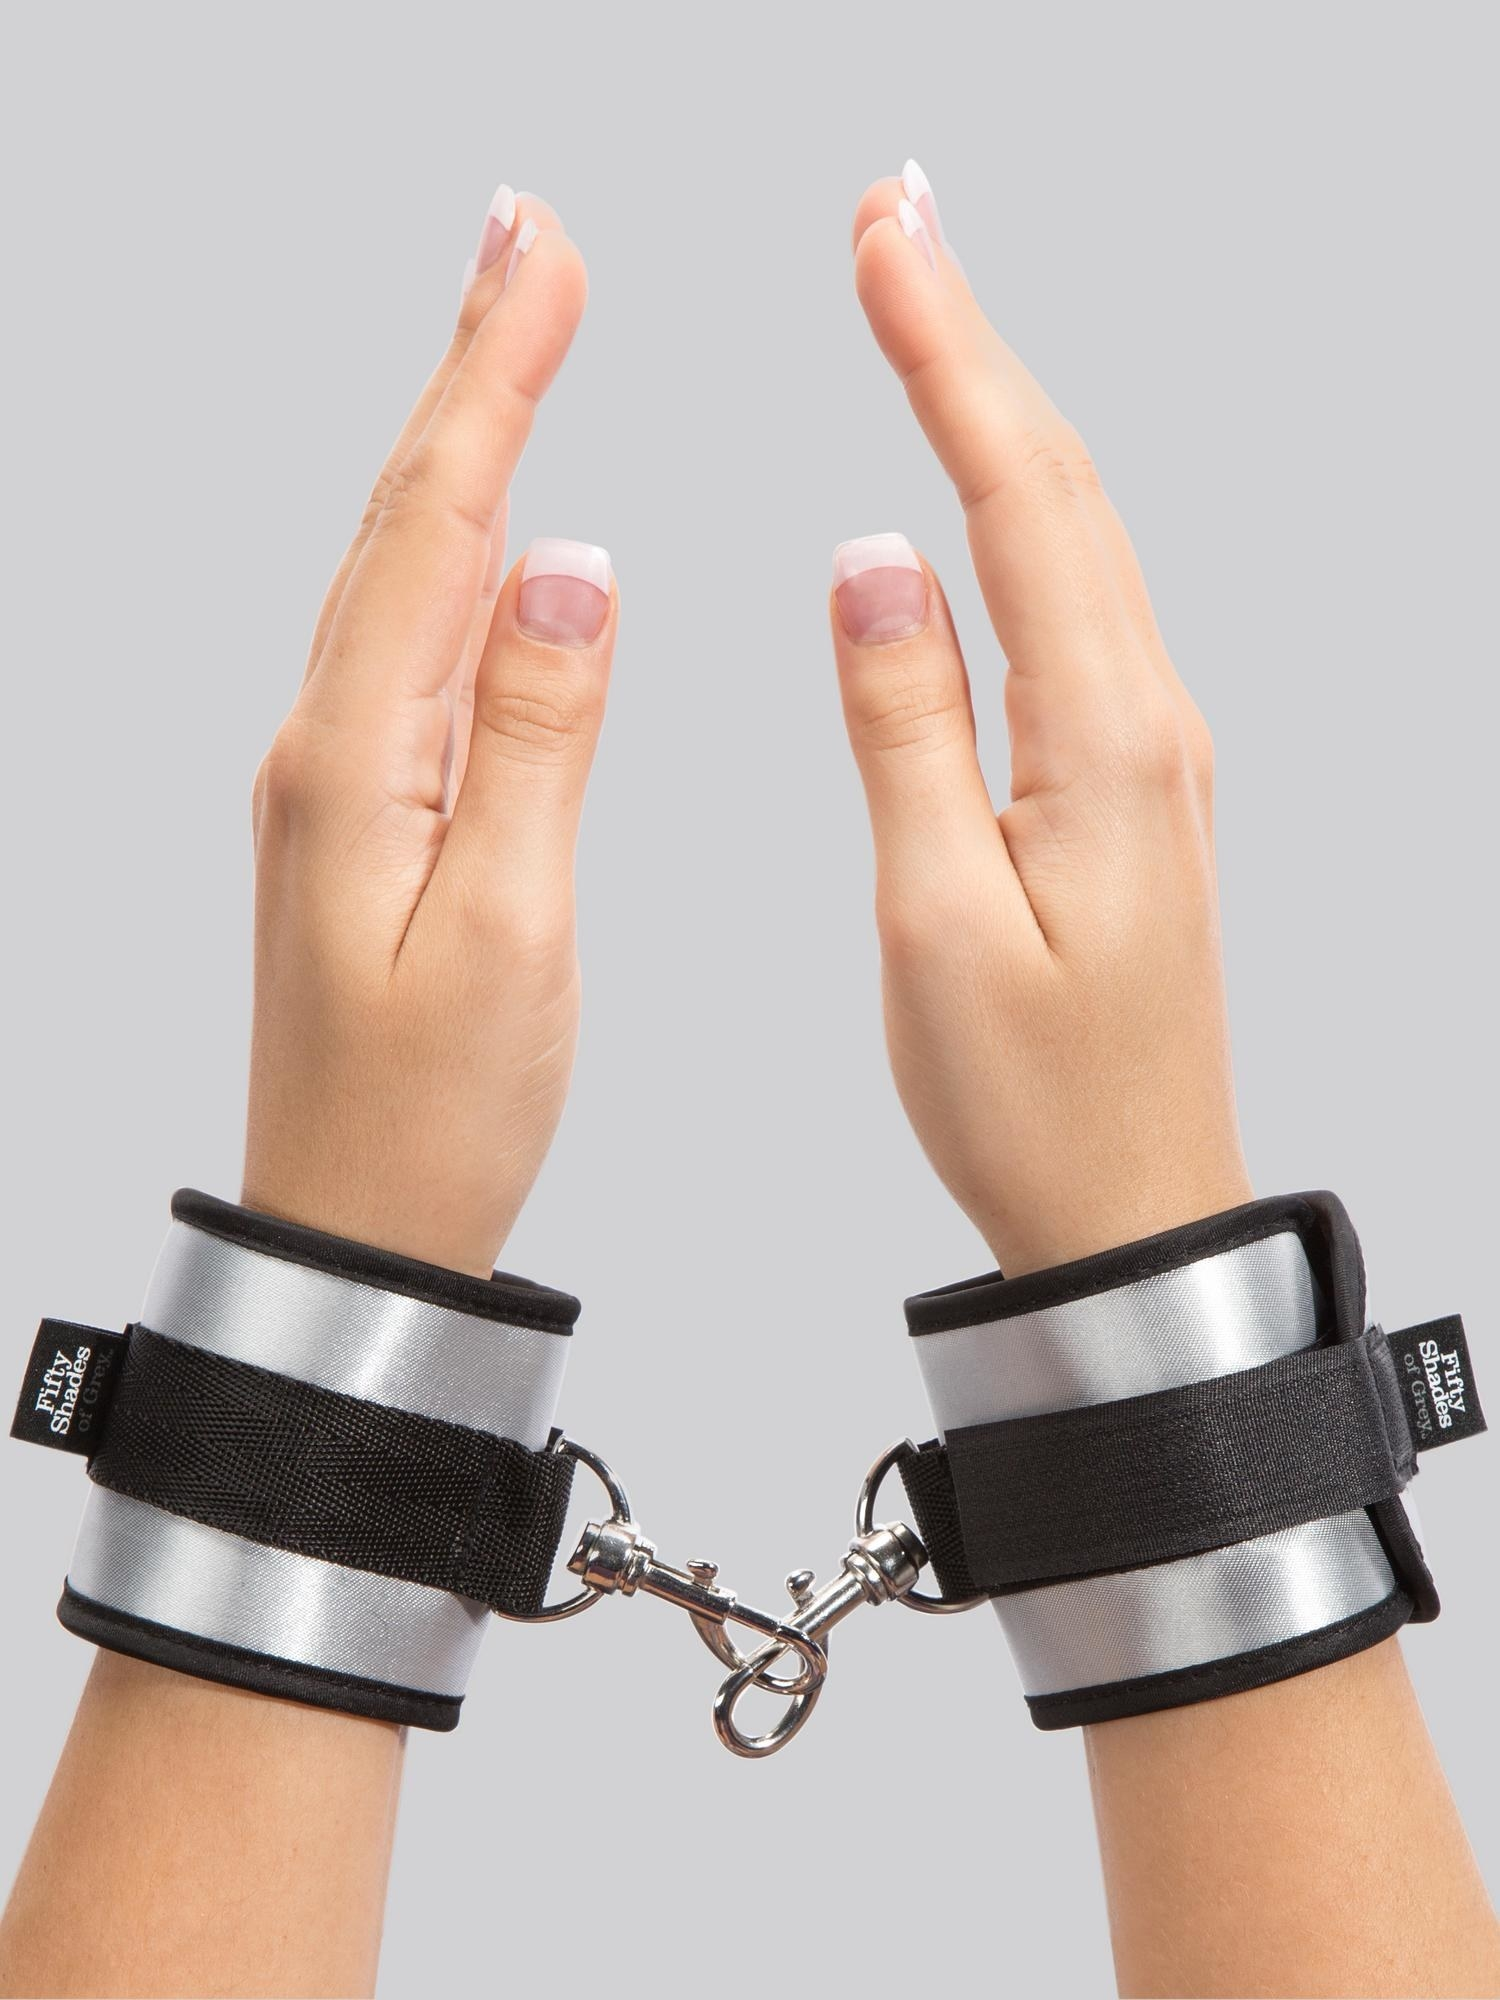 a model's hands in the Fifty Shades of Grey Totally His Soft Handcuffs